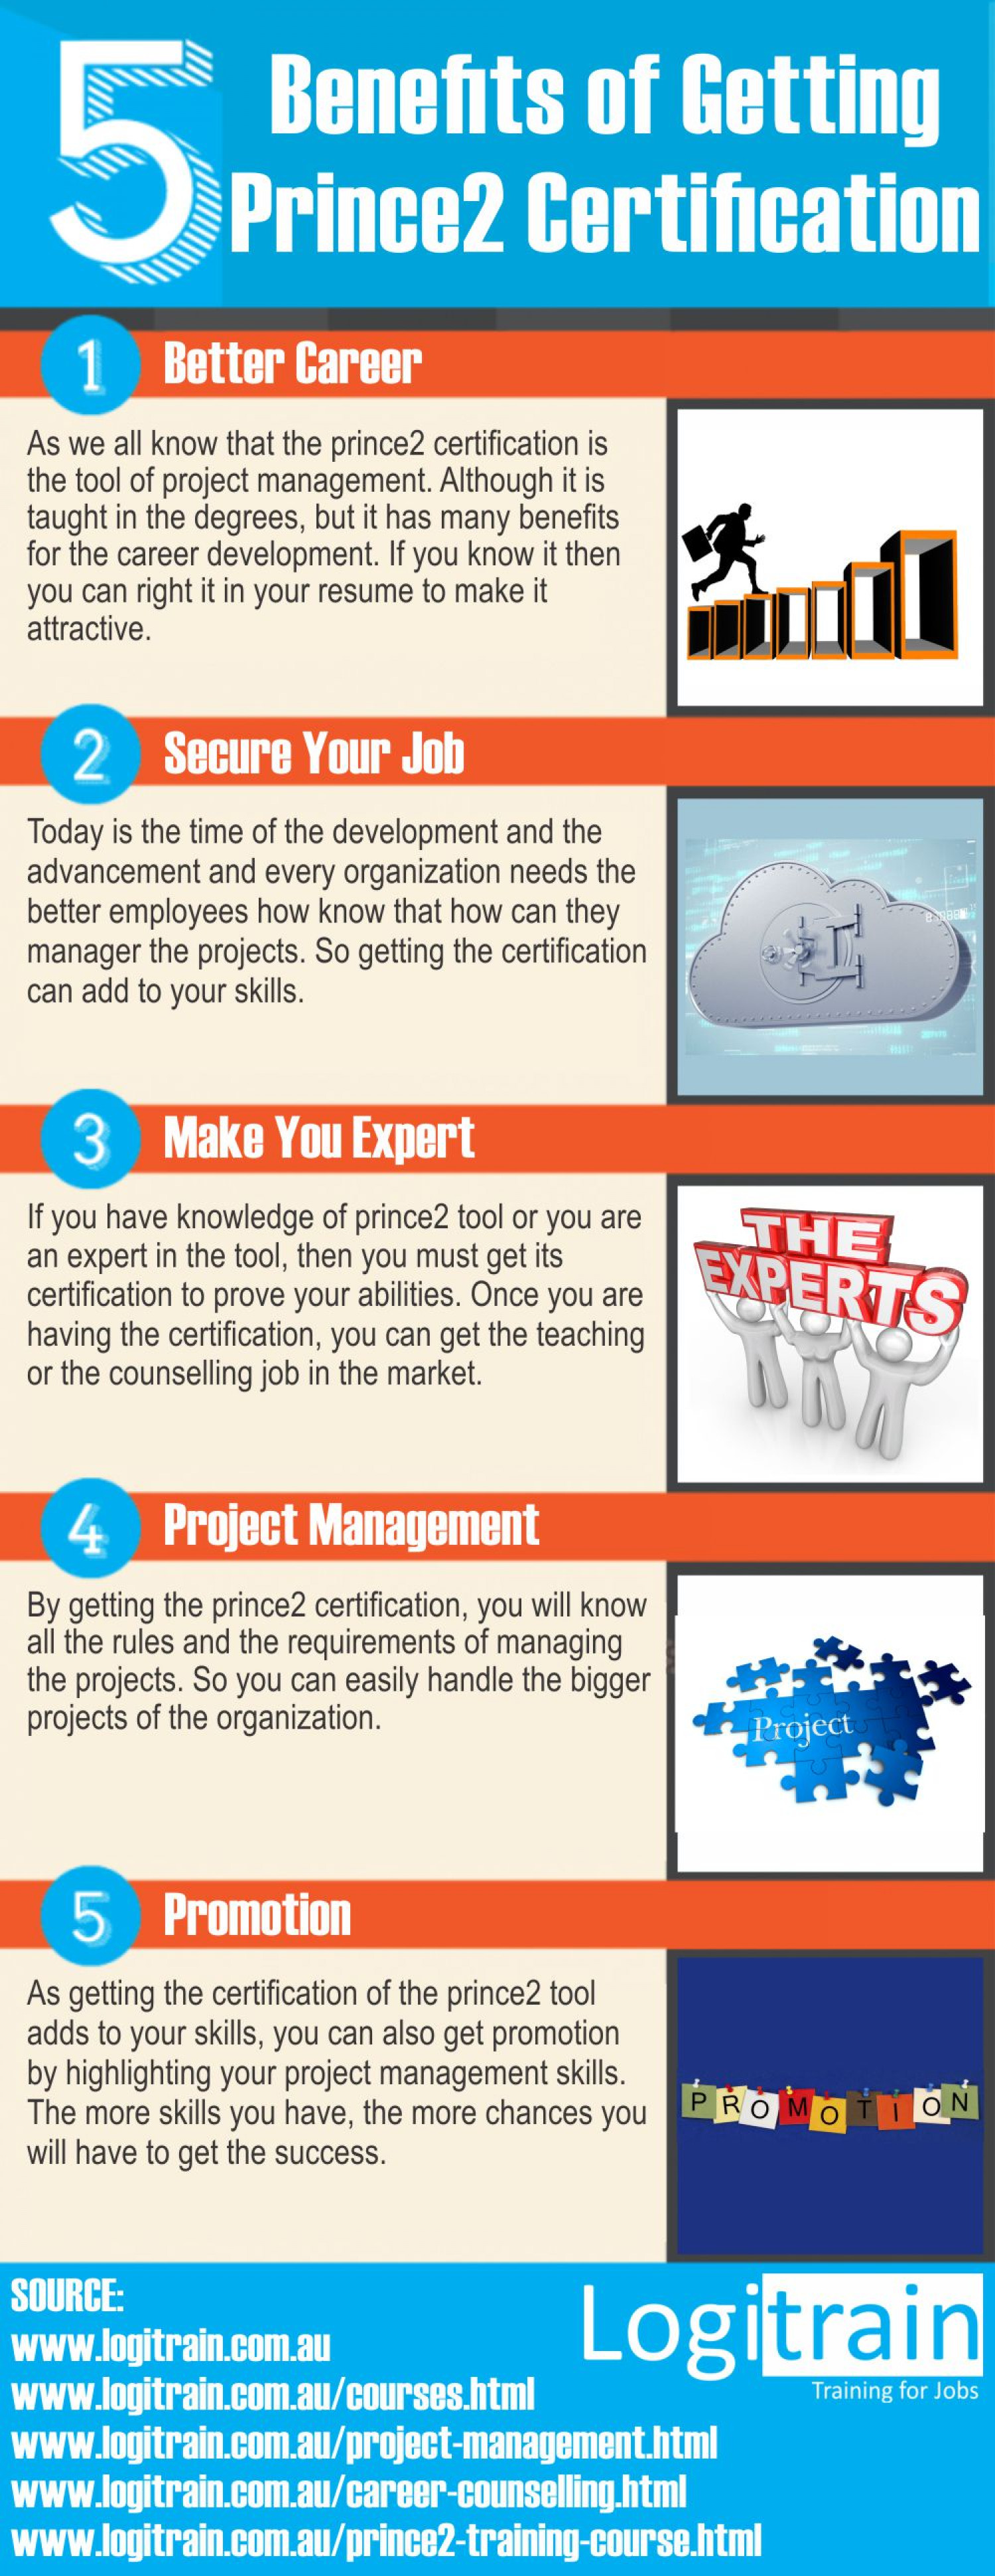 5 benefits of getting prince2 certification visual 5 benefits of getting prince2 certification infographic xflitez Images